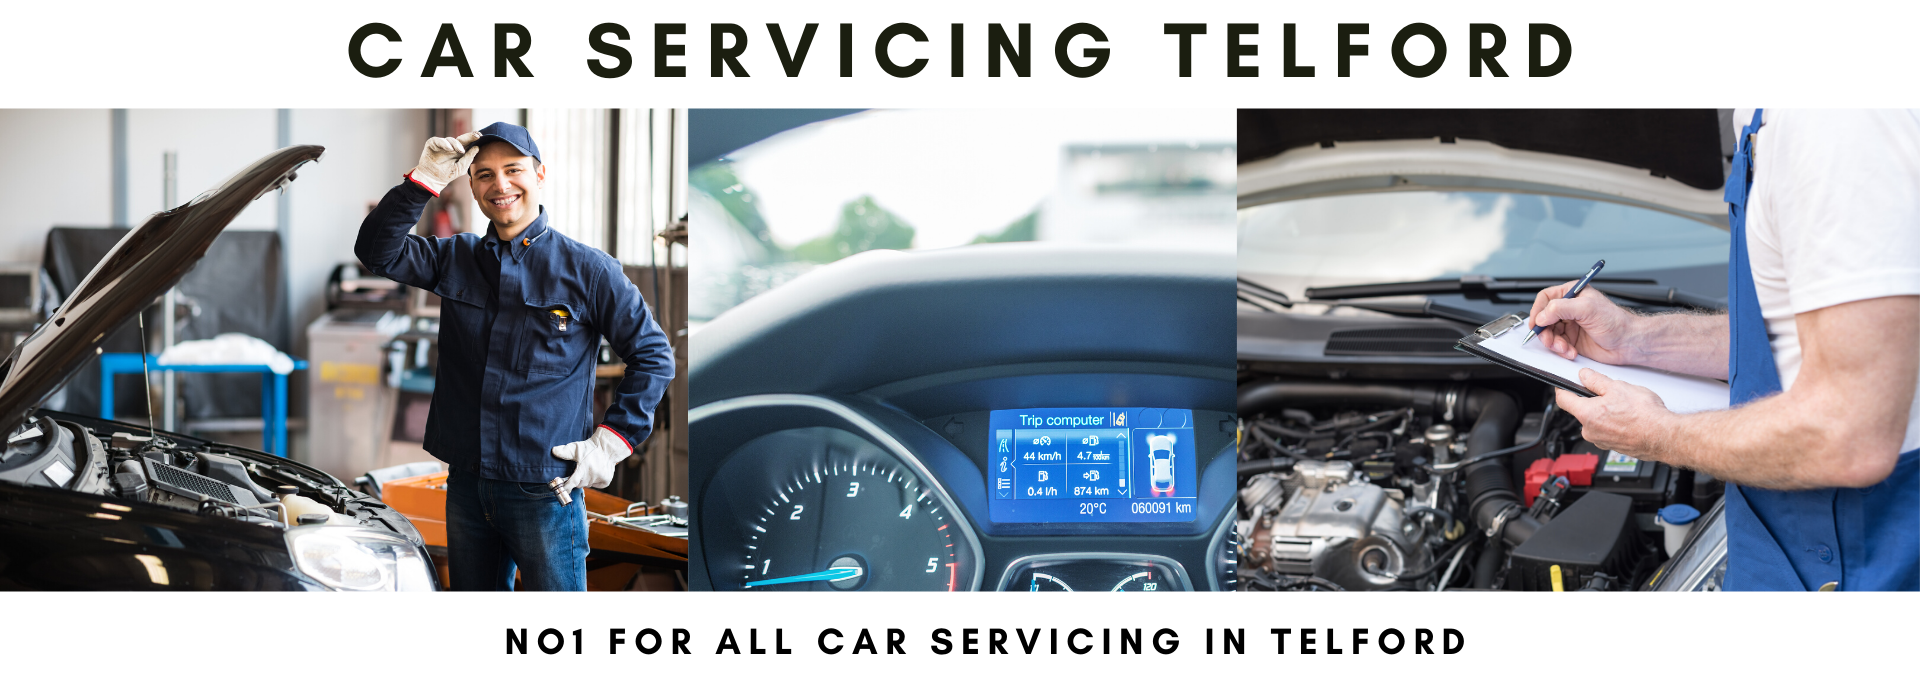 Car Servicing Telford 247